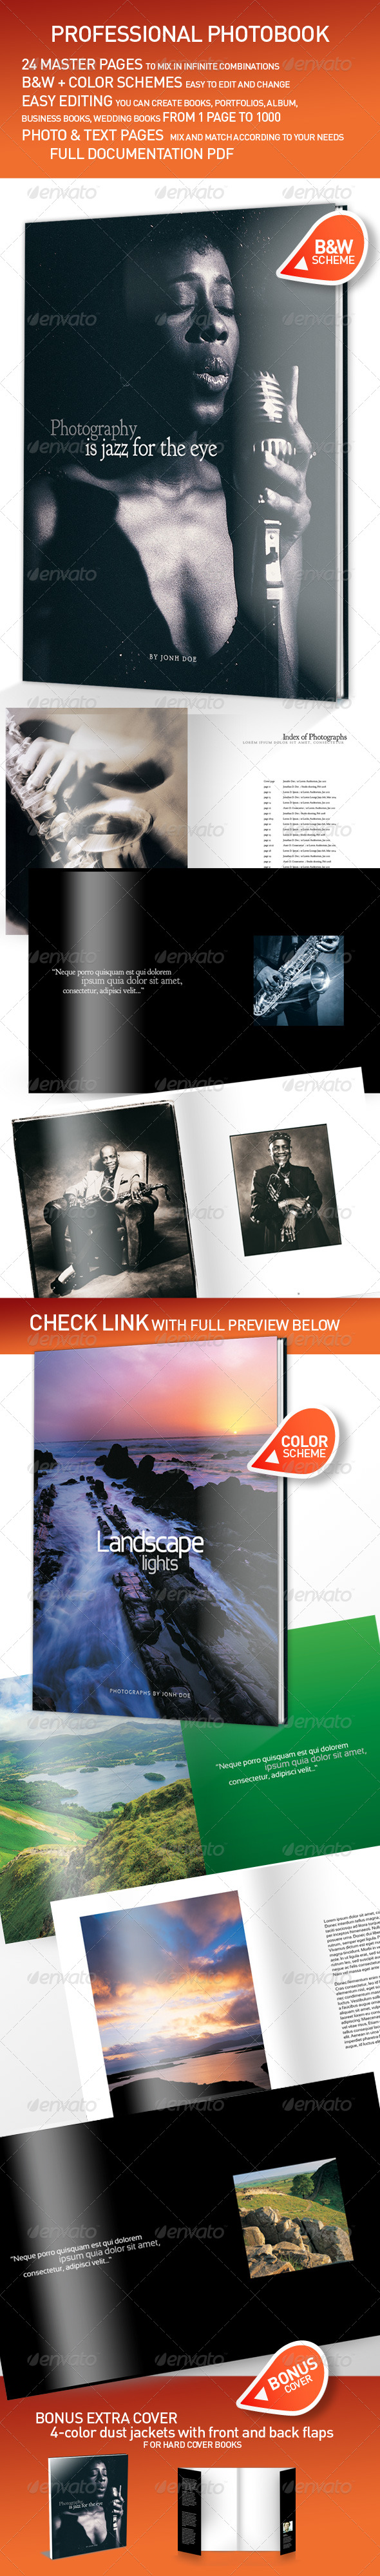 Professional Photobook Template InDesign - Photo Albums Print Templates